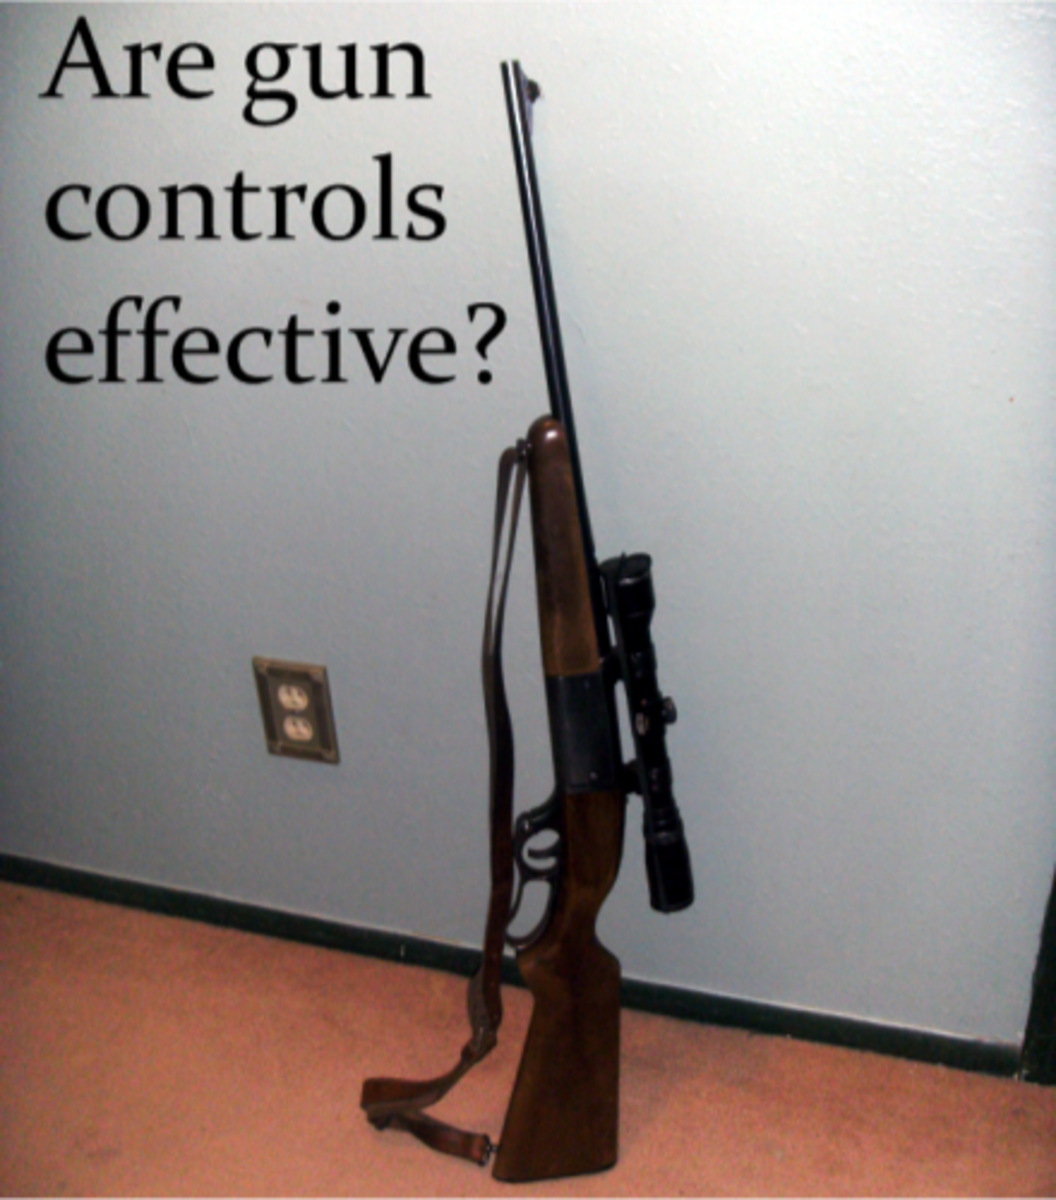 Gun Control and Crime Statistics - Does Gun Control Reduce Crime?